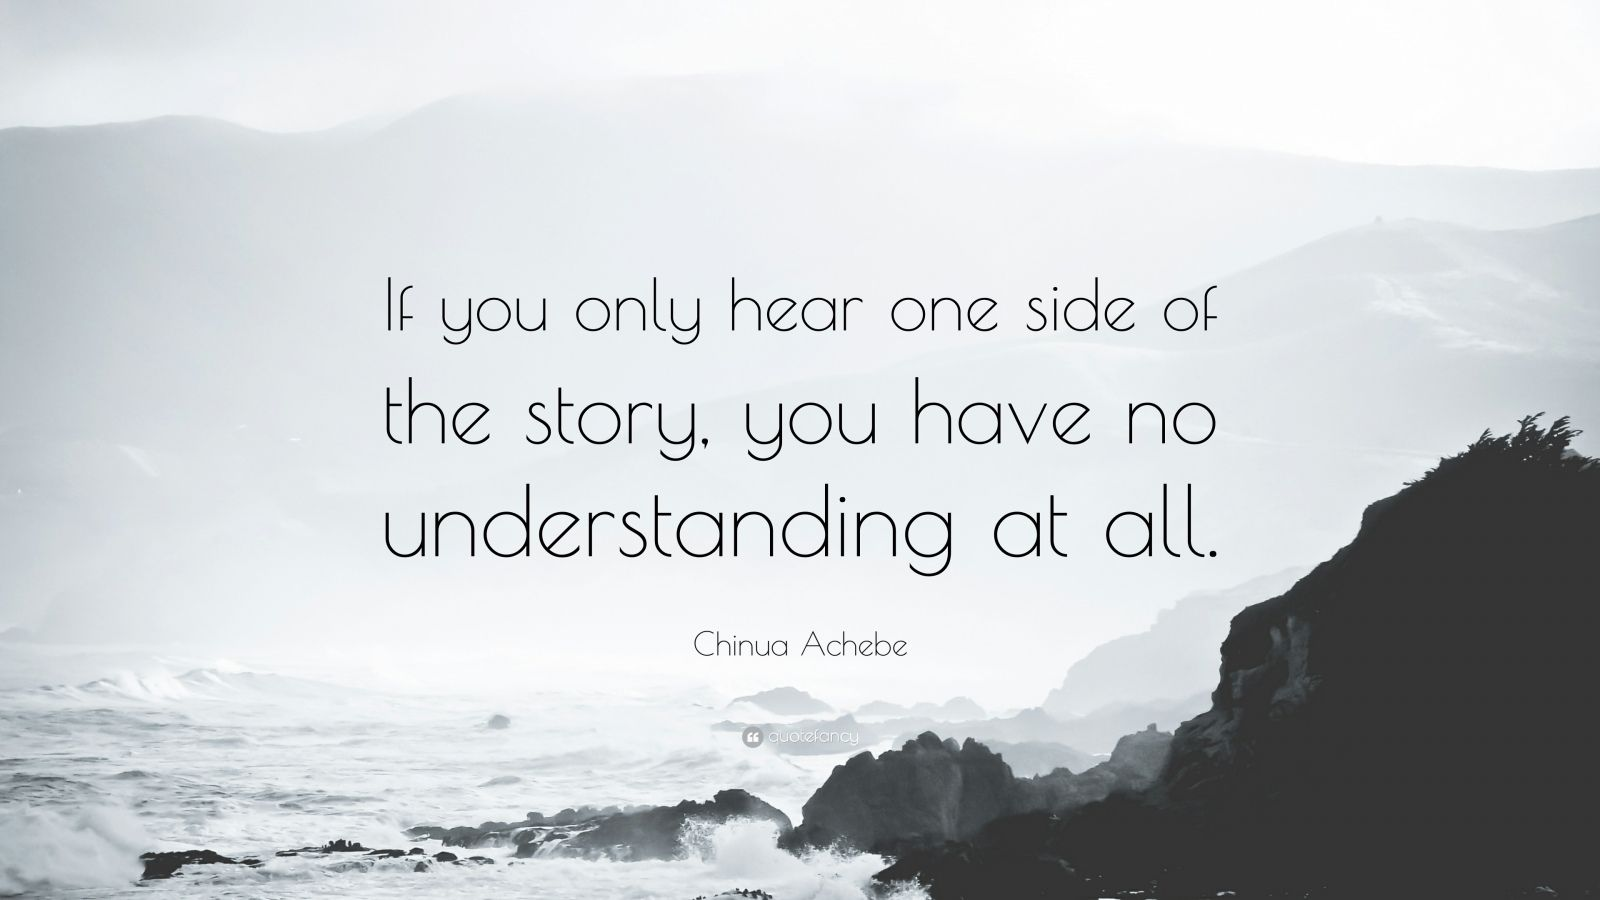 Once Upon A Time Quotes Wallpaper Chinua Achebe Quote If You Only Hear One Side Of The